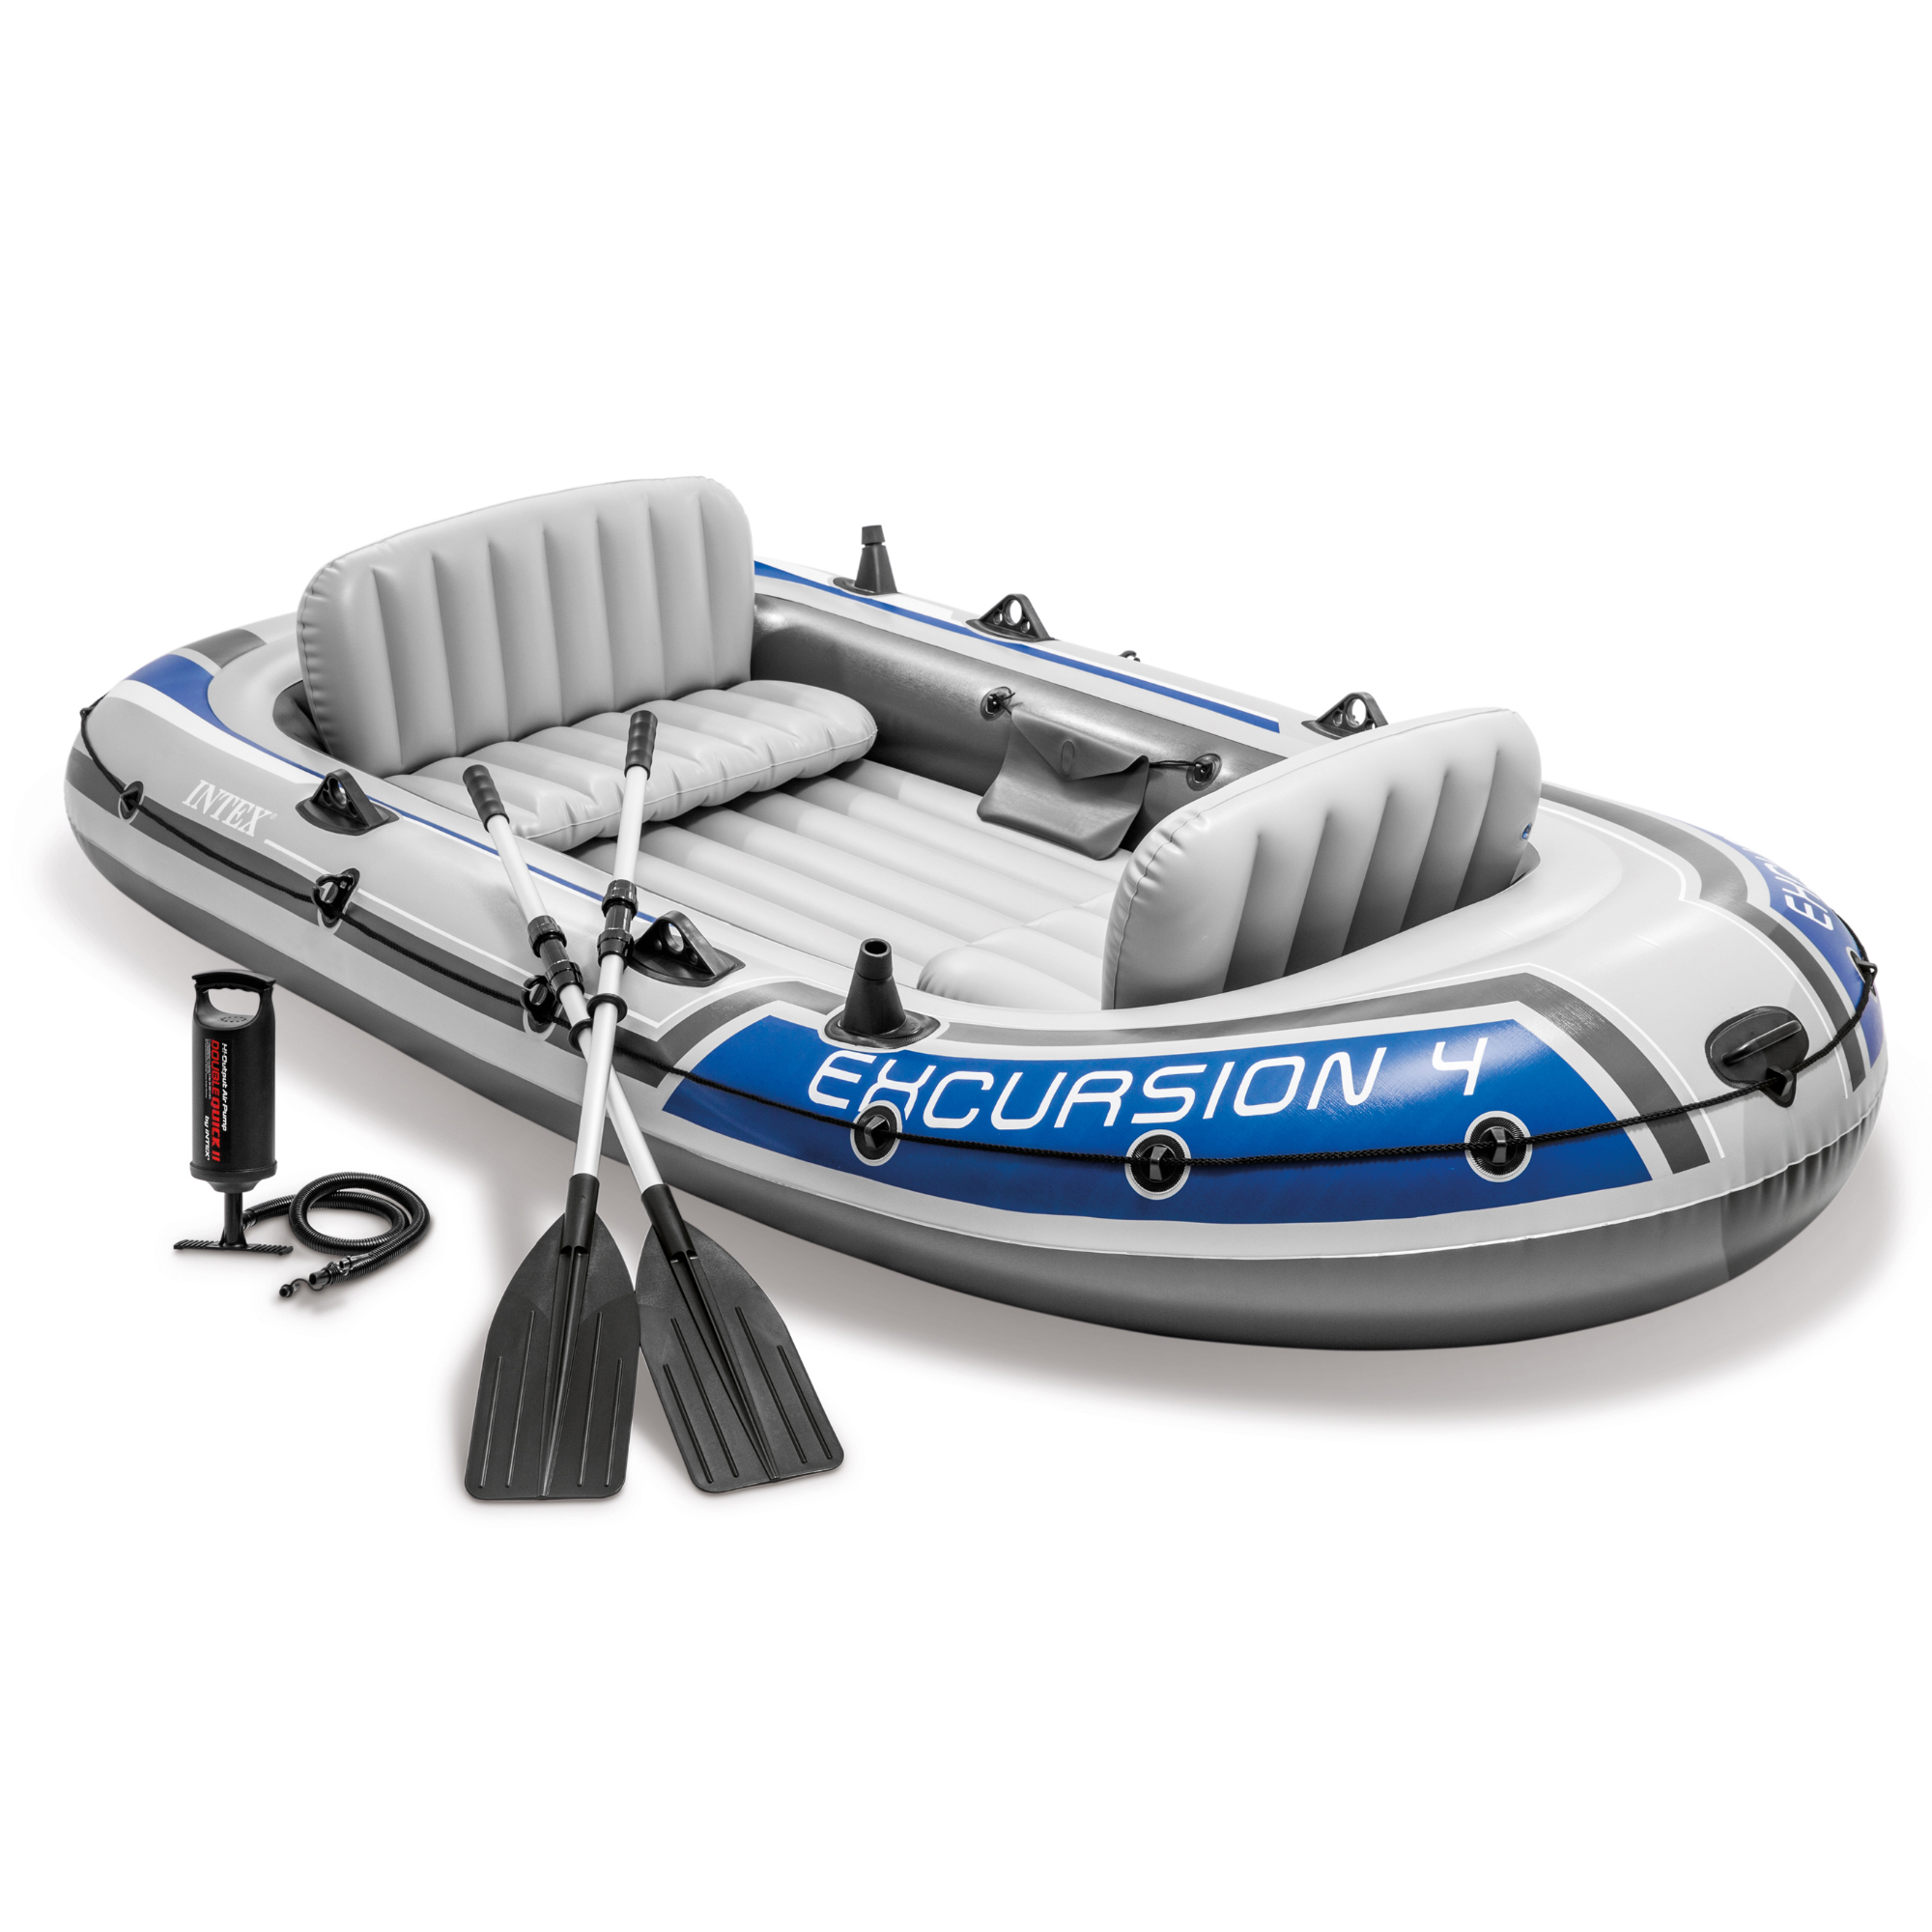 Intex - Excursion 4 Boat Set